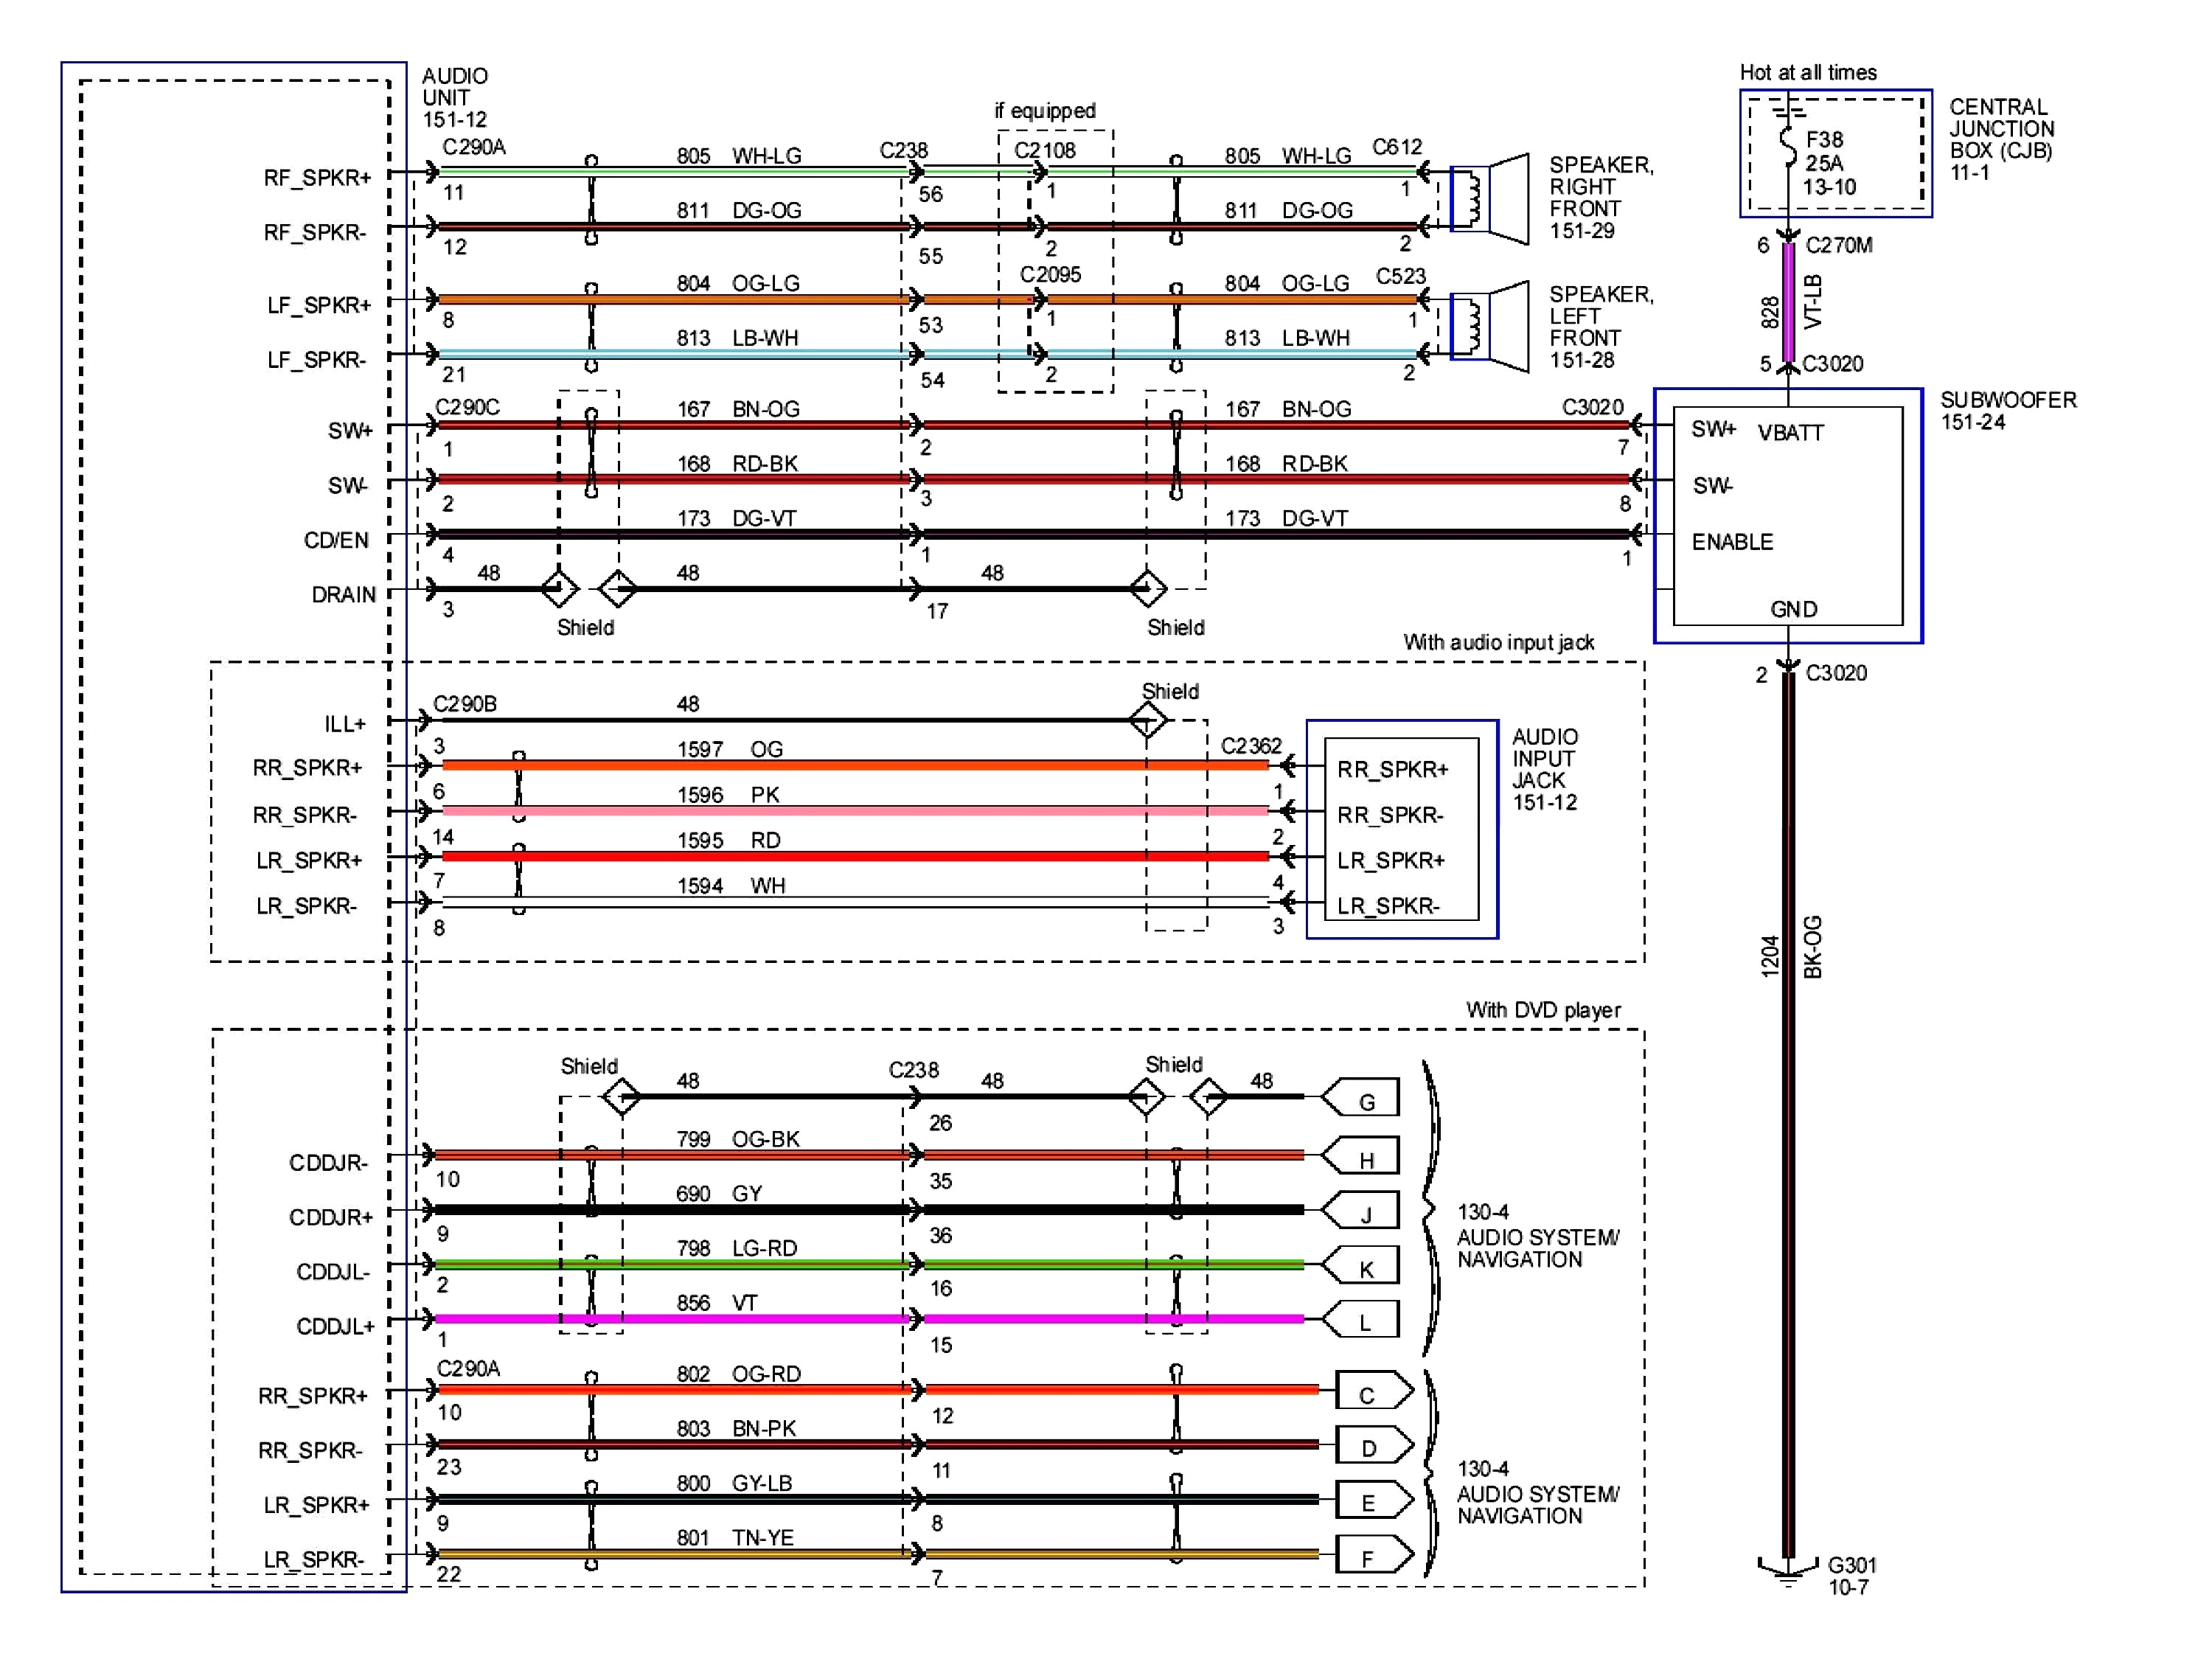 ford ranger stereo wiring diagram wb 3021  2005 ford explorer alternator wiring diagram further 2000 2011 ford ranger radio wiring diagram 2005 ford explorer alternator wiring